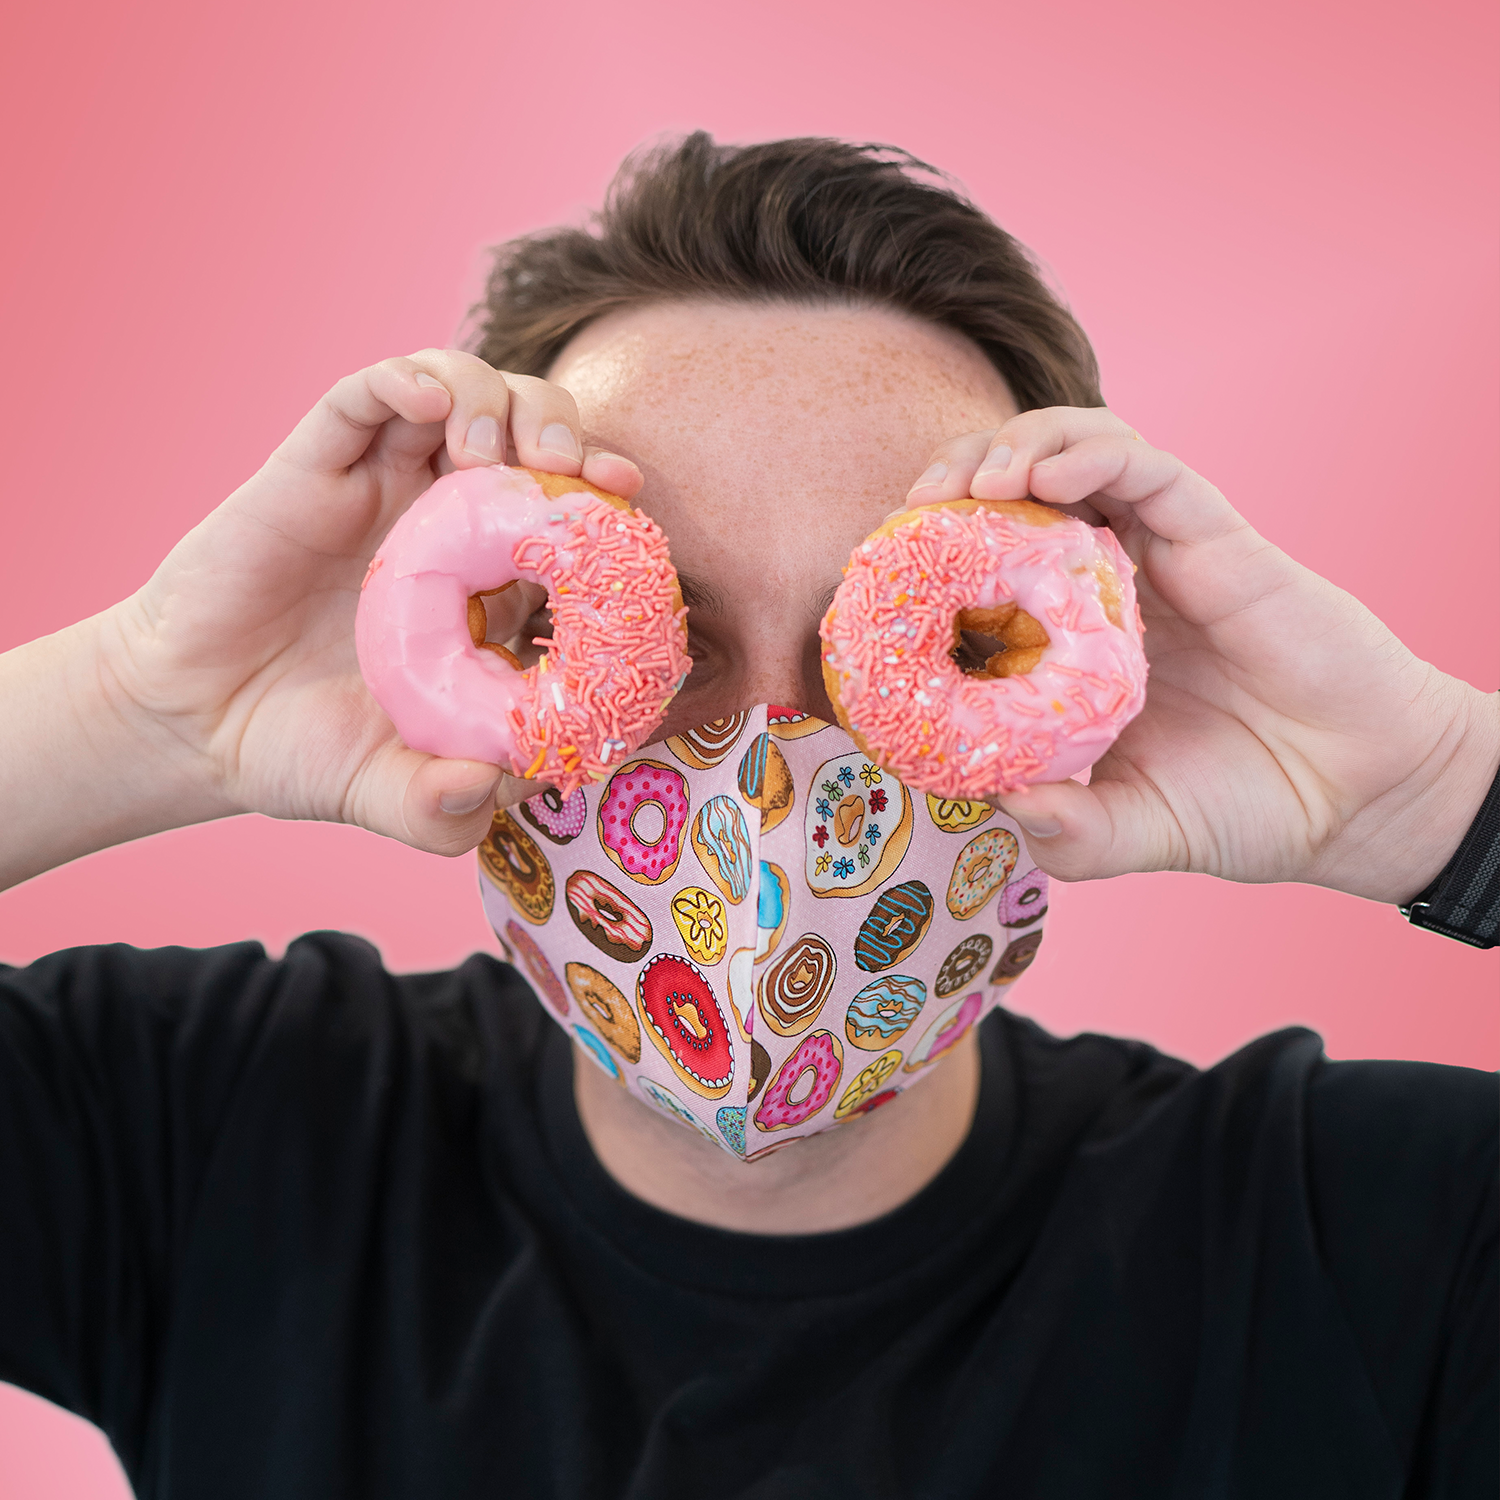 Triple layered face mask made in Melbourne Australia from cotton and poplin featuring a unique doughnut print